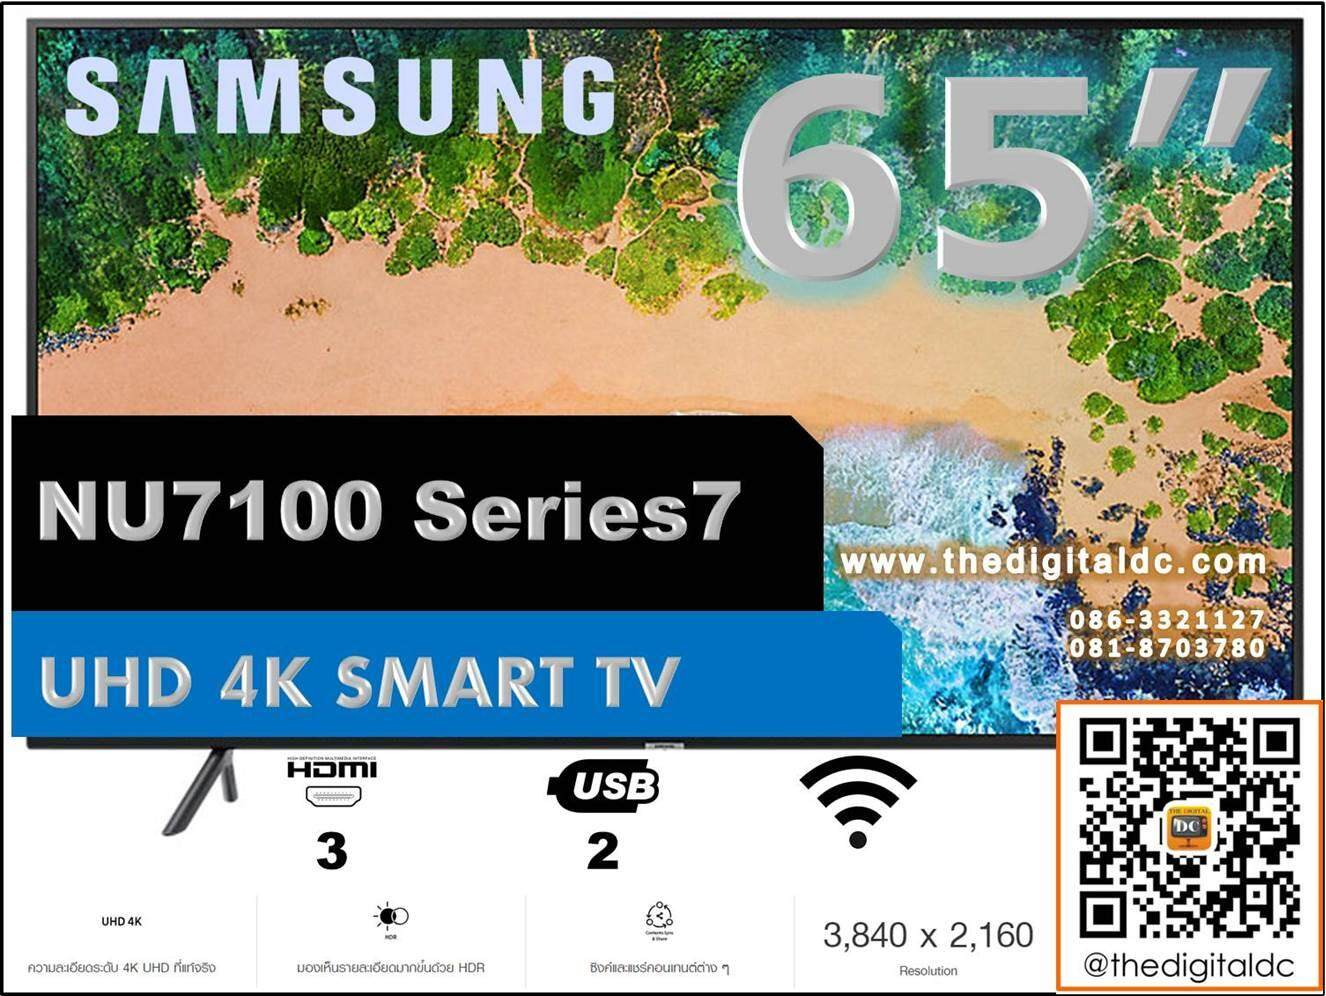 SAMSUNG 65 UHD 4K Smart TV NU7100 Series 7 (2018)